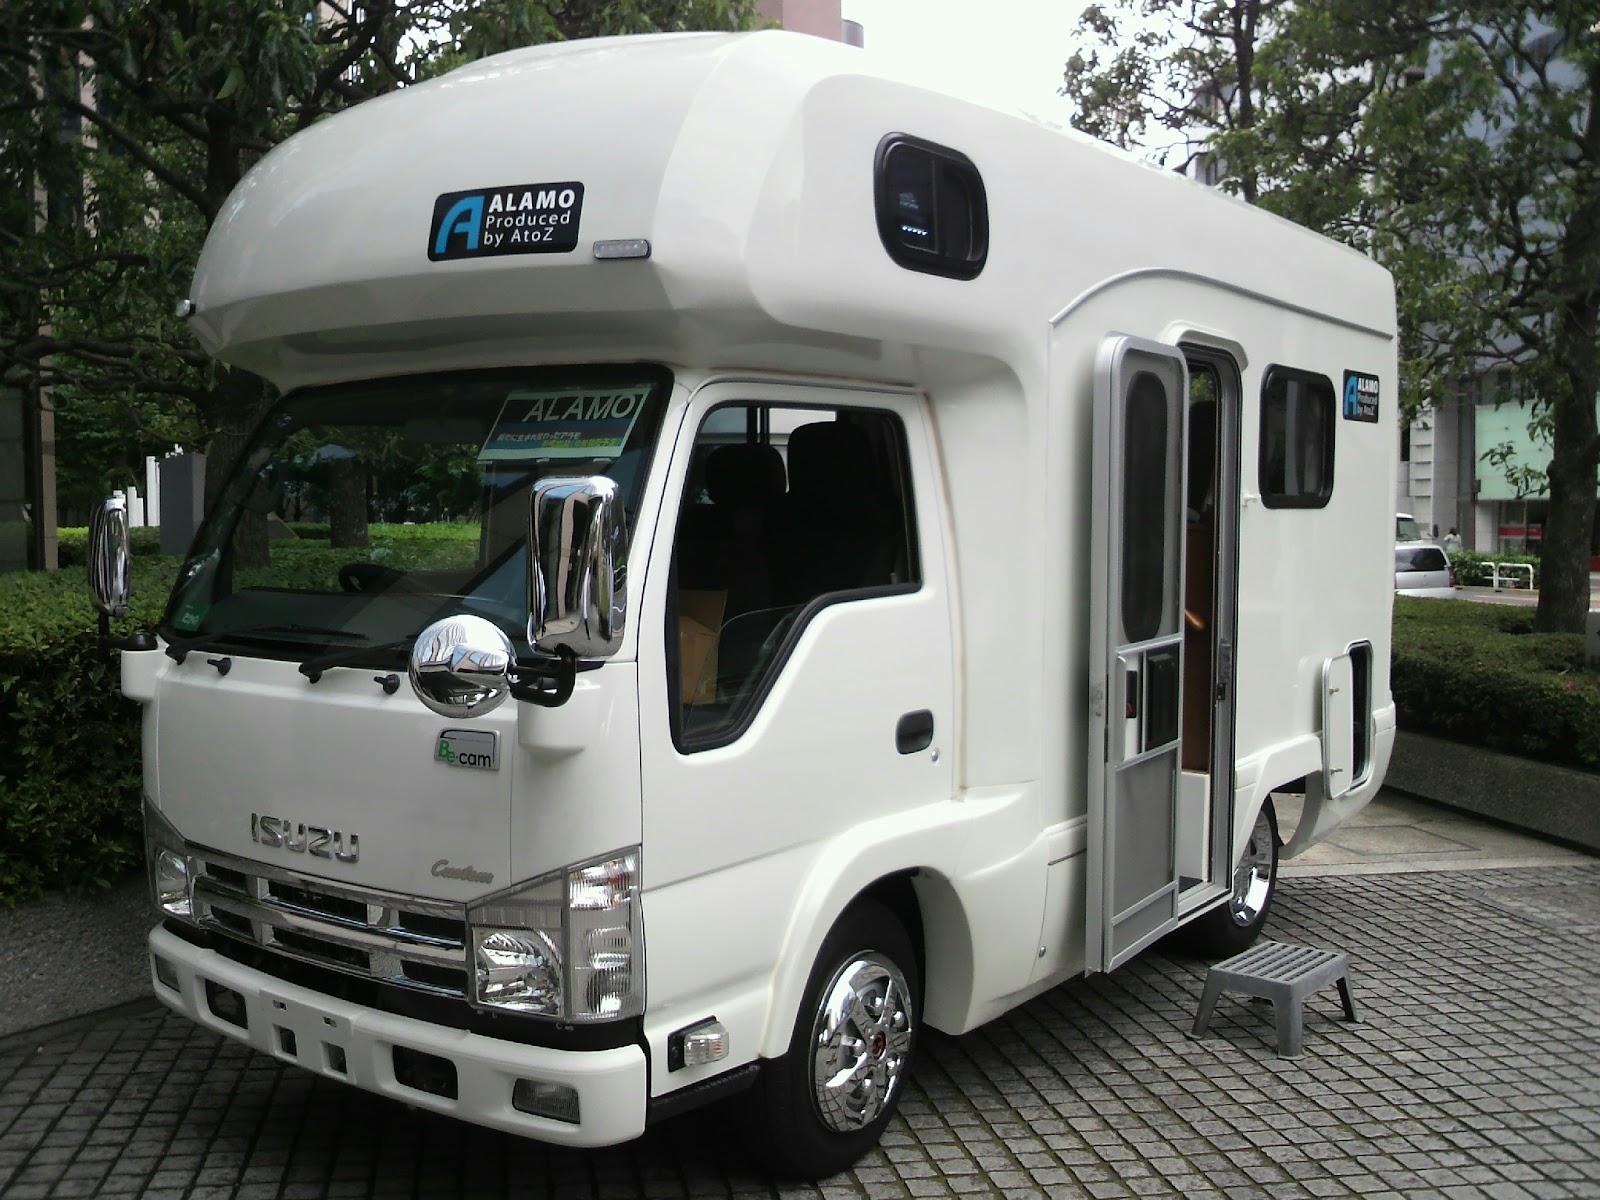 ISUZU_ELF_6th_Gen,_Standard-Cab-type_Recreational_Vehicle.jpg